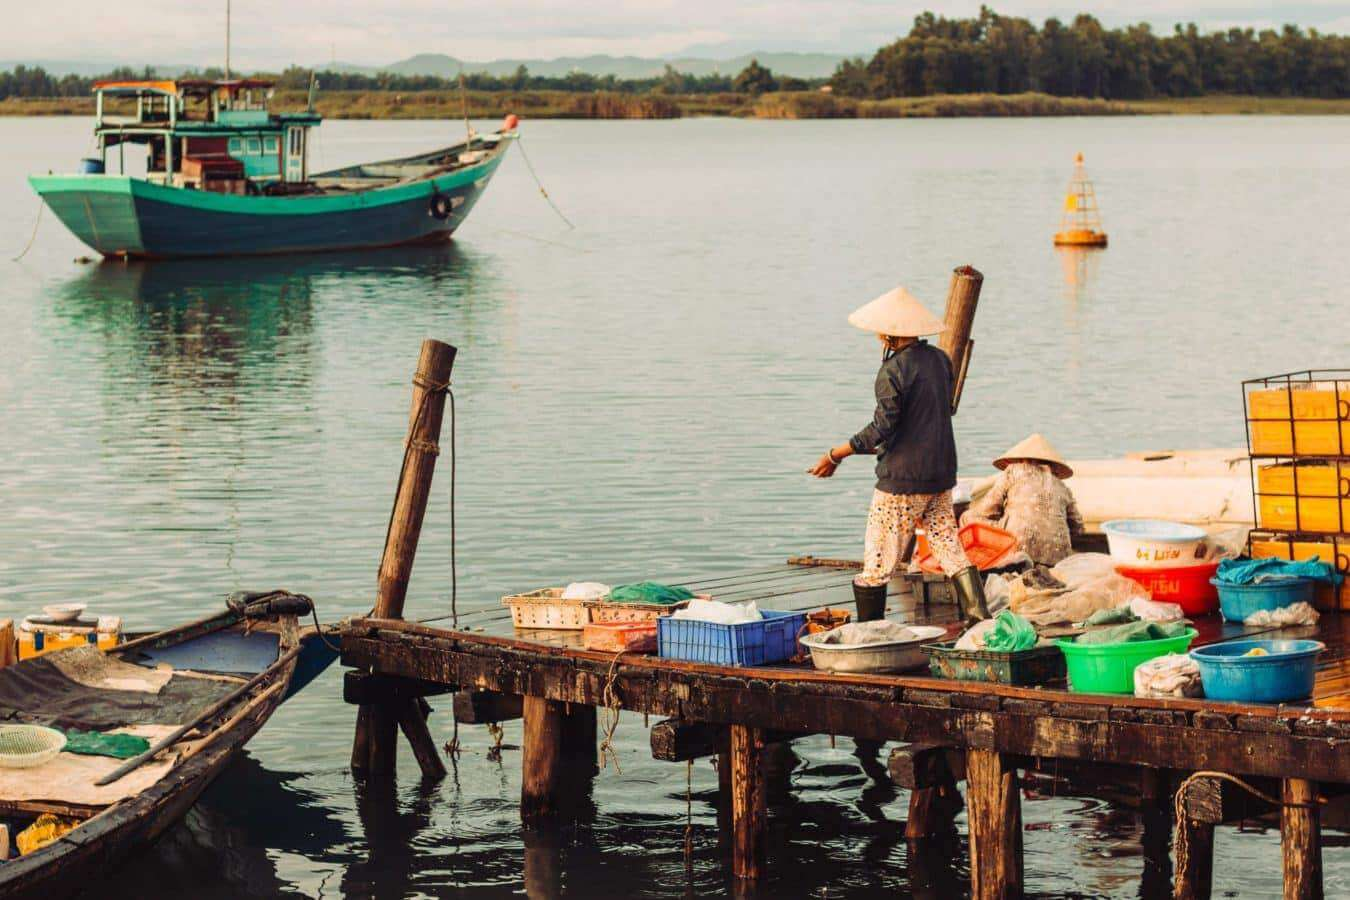 landing dock - Hoi An's markets